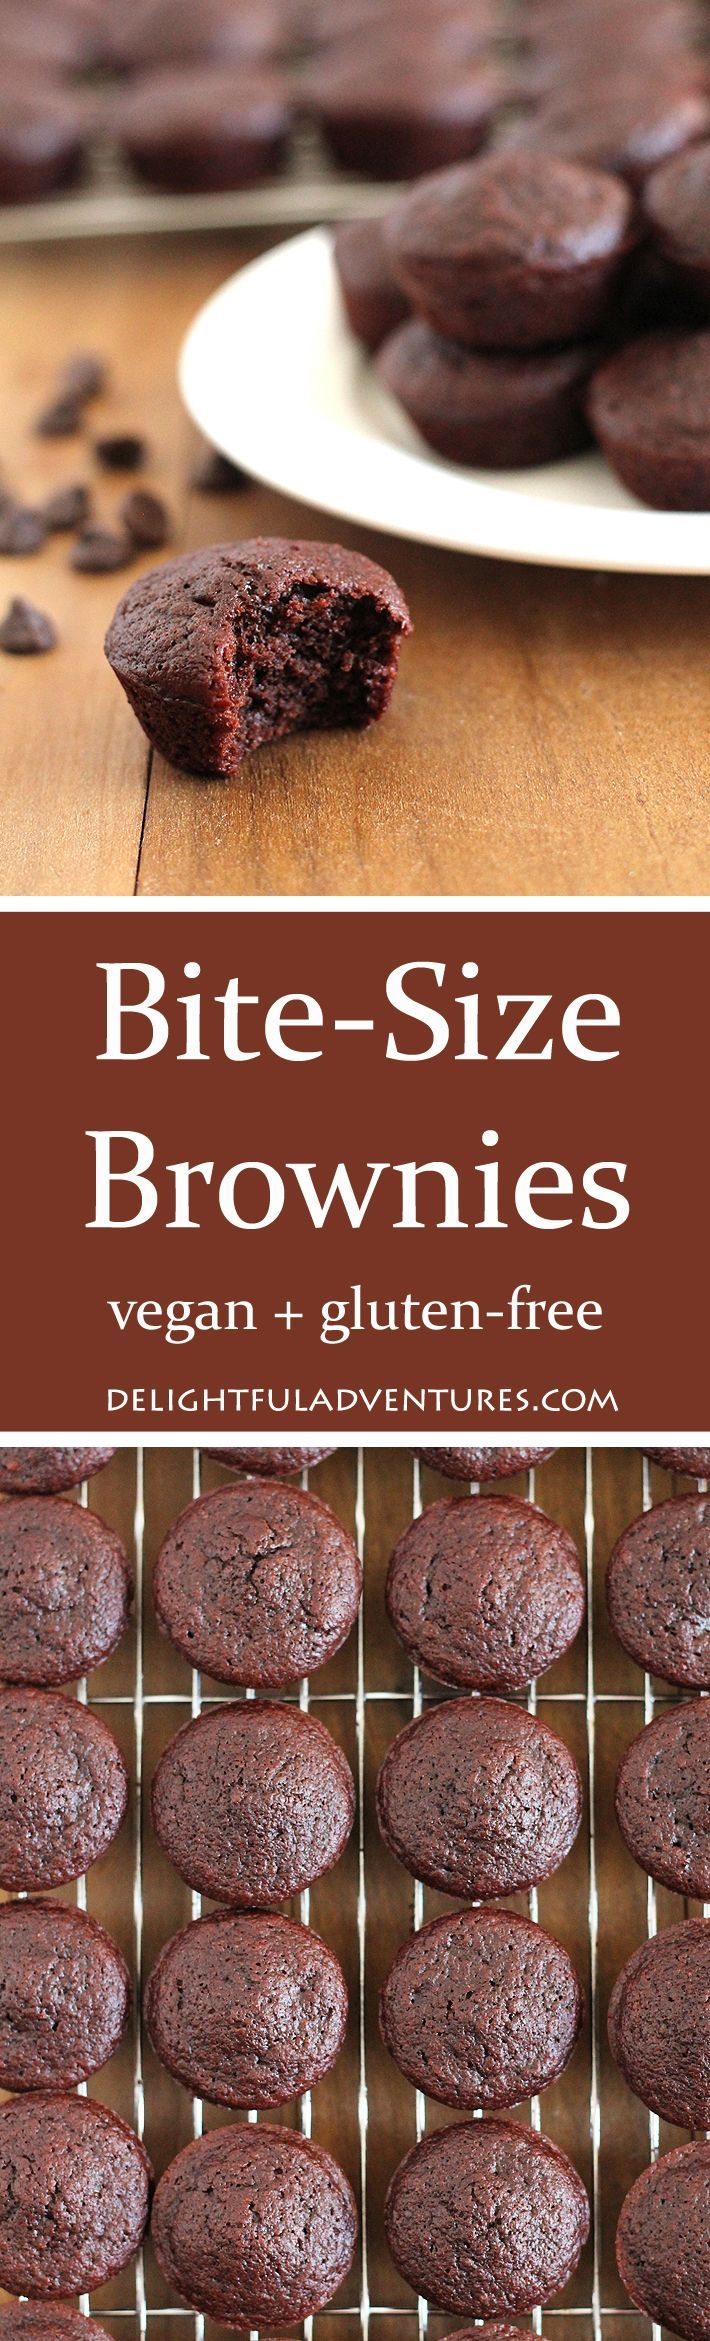 What do you do when you're craving something sweet but you just want a little treat? You make these delicious, vegan gluten free bite-size brownies! via @delighfuladv